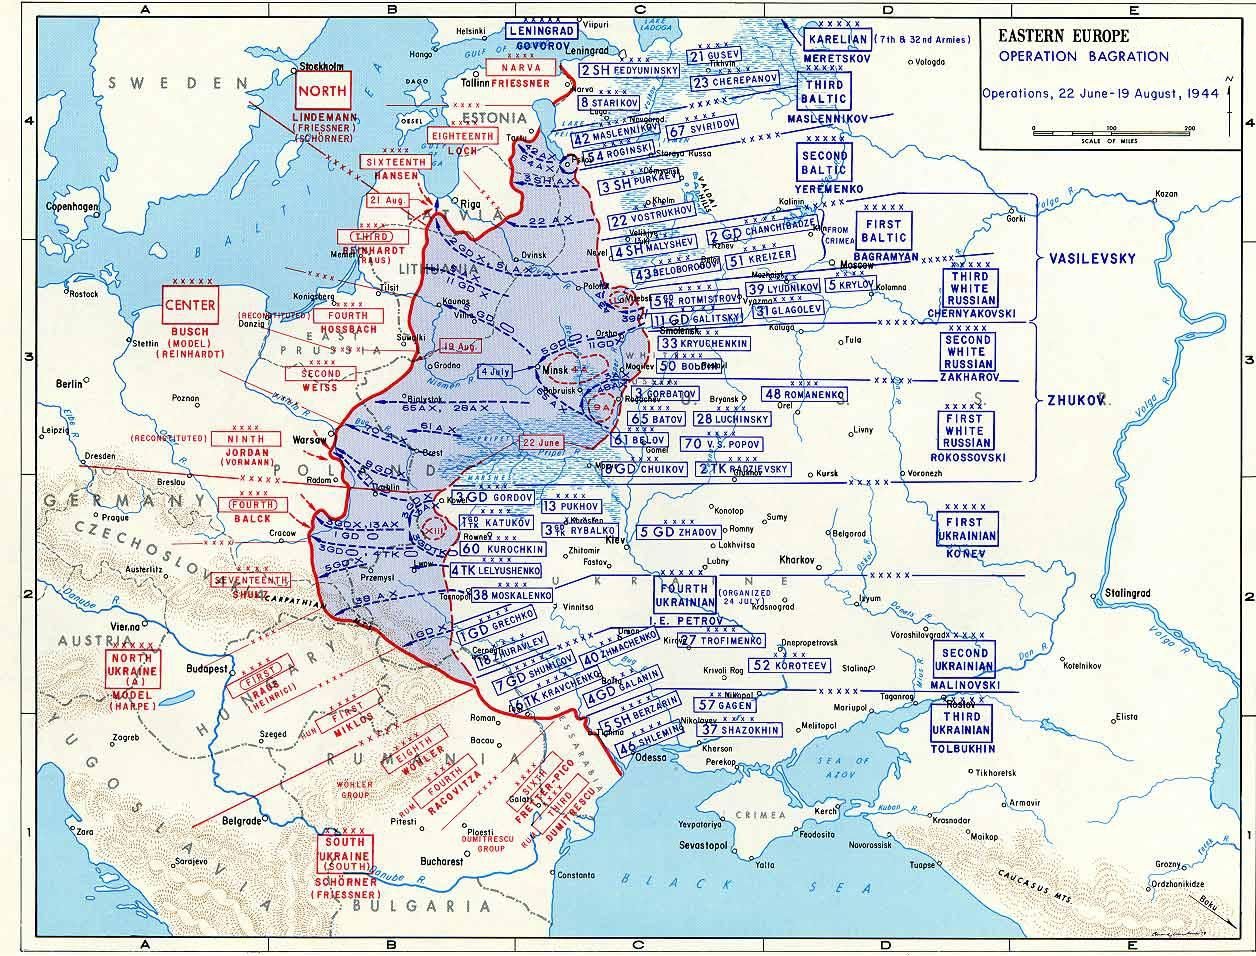 Map map depicting operation bagration 22 jun 19 aug 1944 categorymaps of the eastern front in world war ii gumiabroncs Choice Image